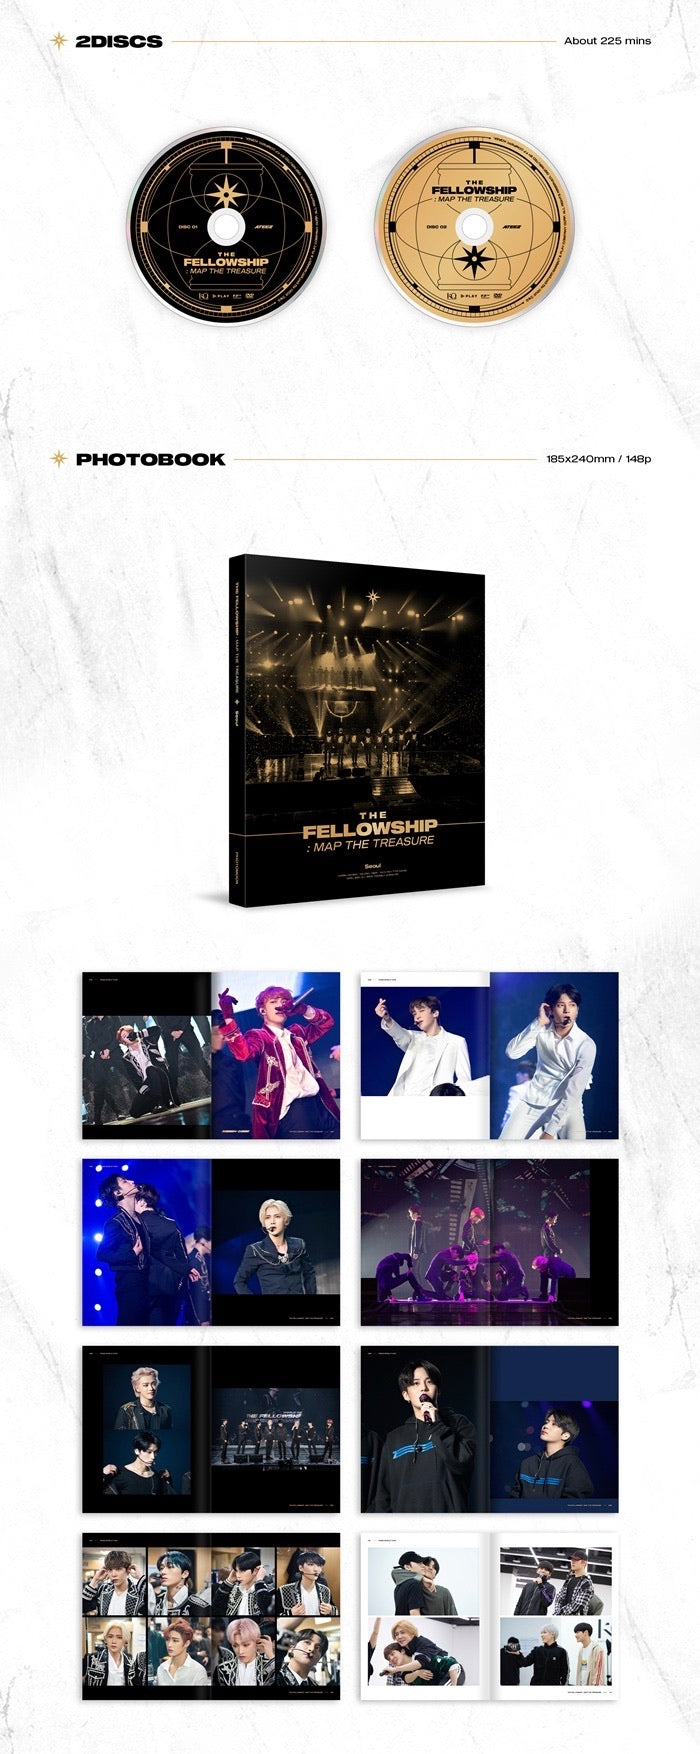 Ateez - Ateez World Tour The Fellowship: Map The Treasure Seoul DVD - Pre-Order